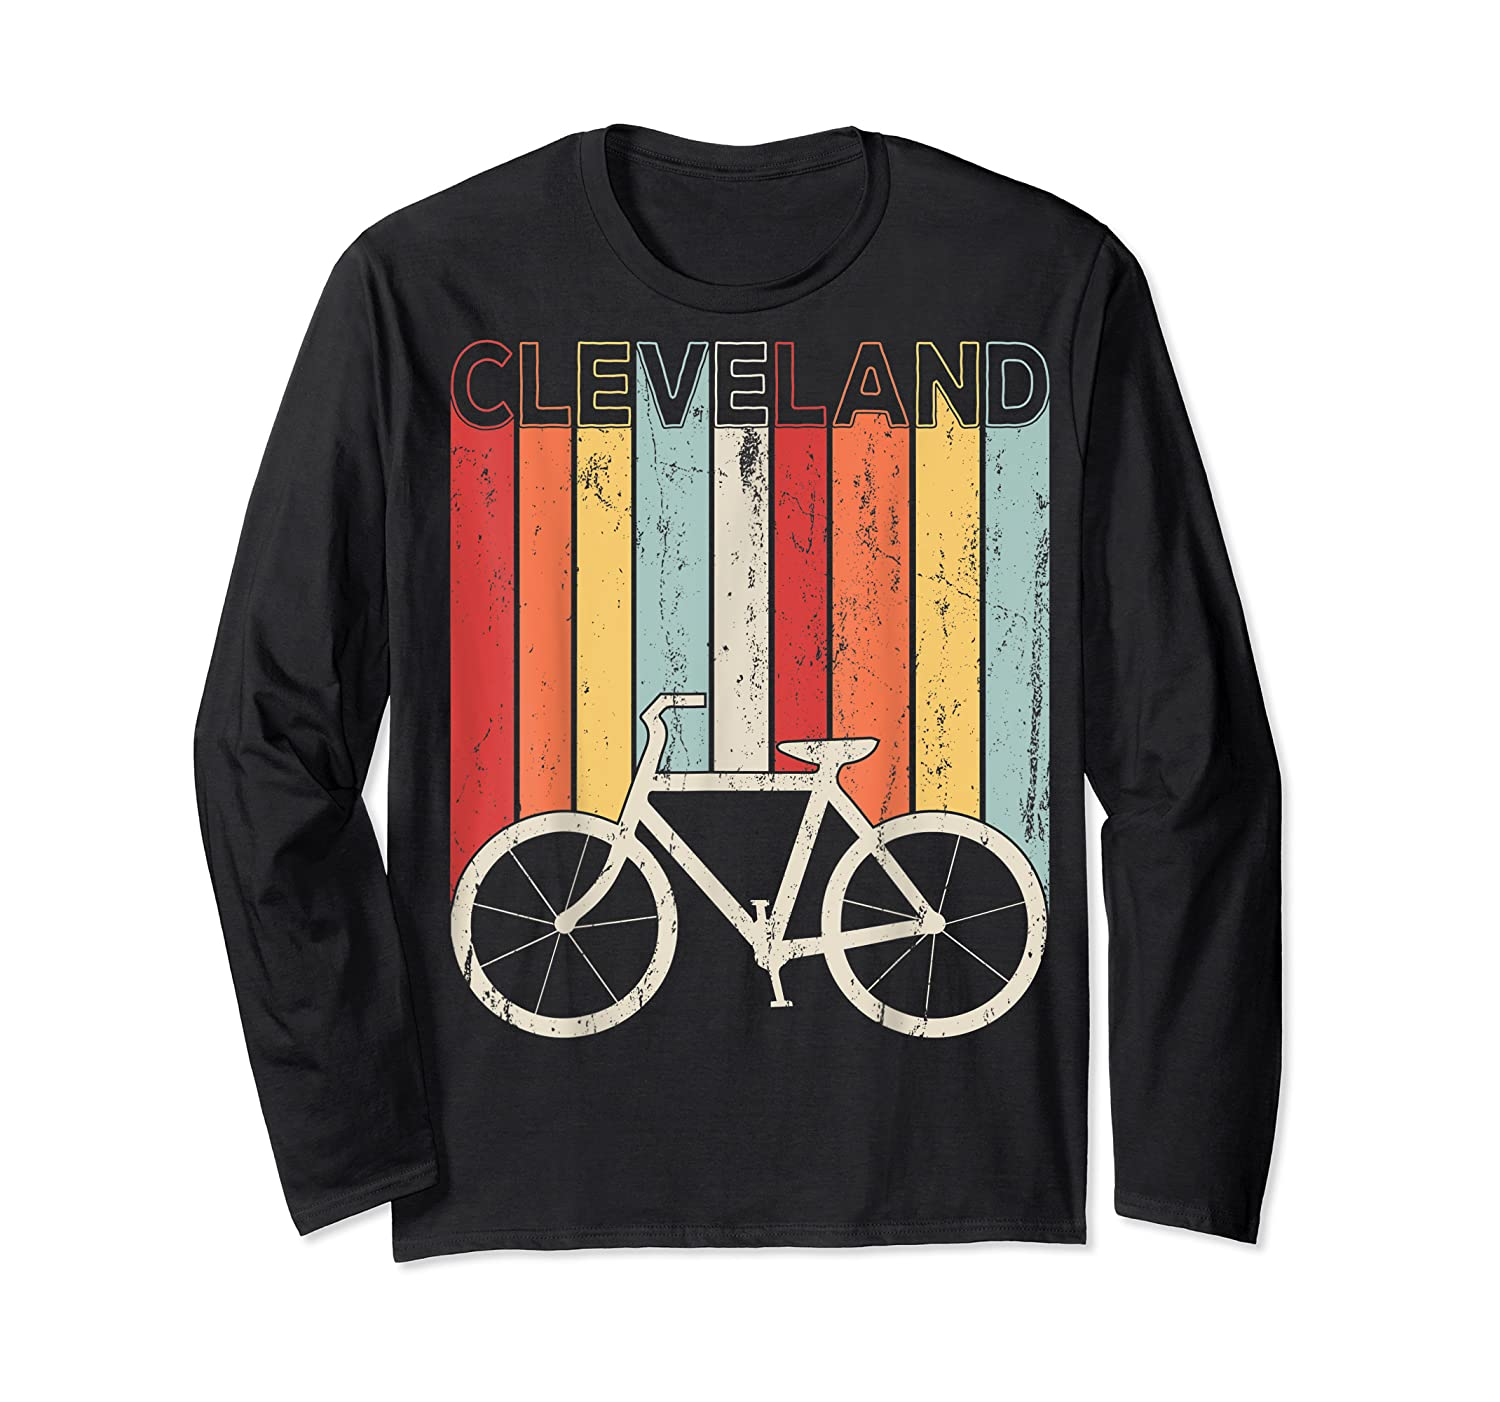 Retro Vintage Cleveland City Cycling Shirt For Cycling Lover Long Sleeve T-shirt